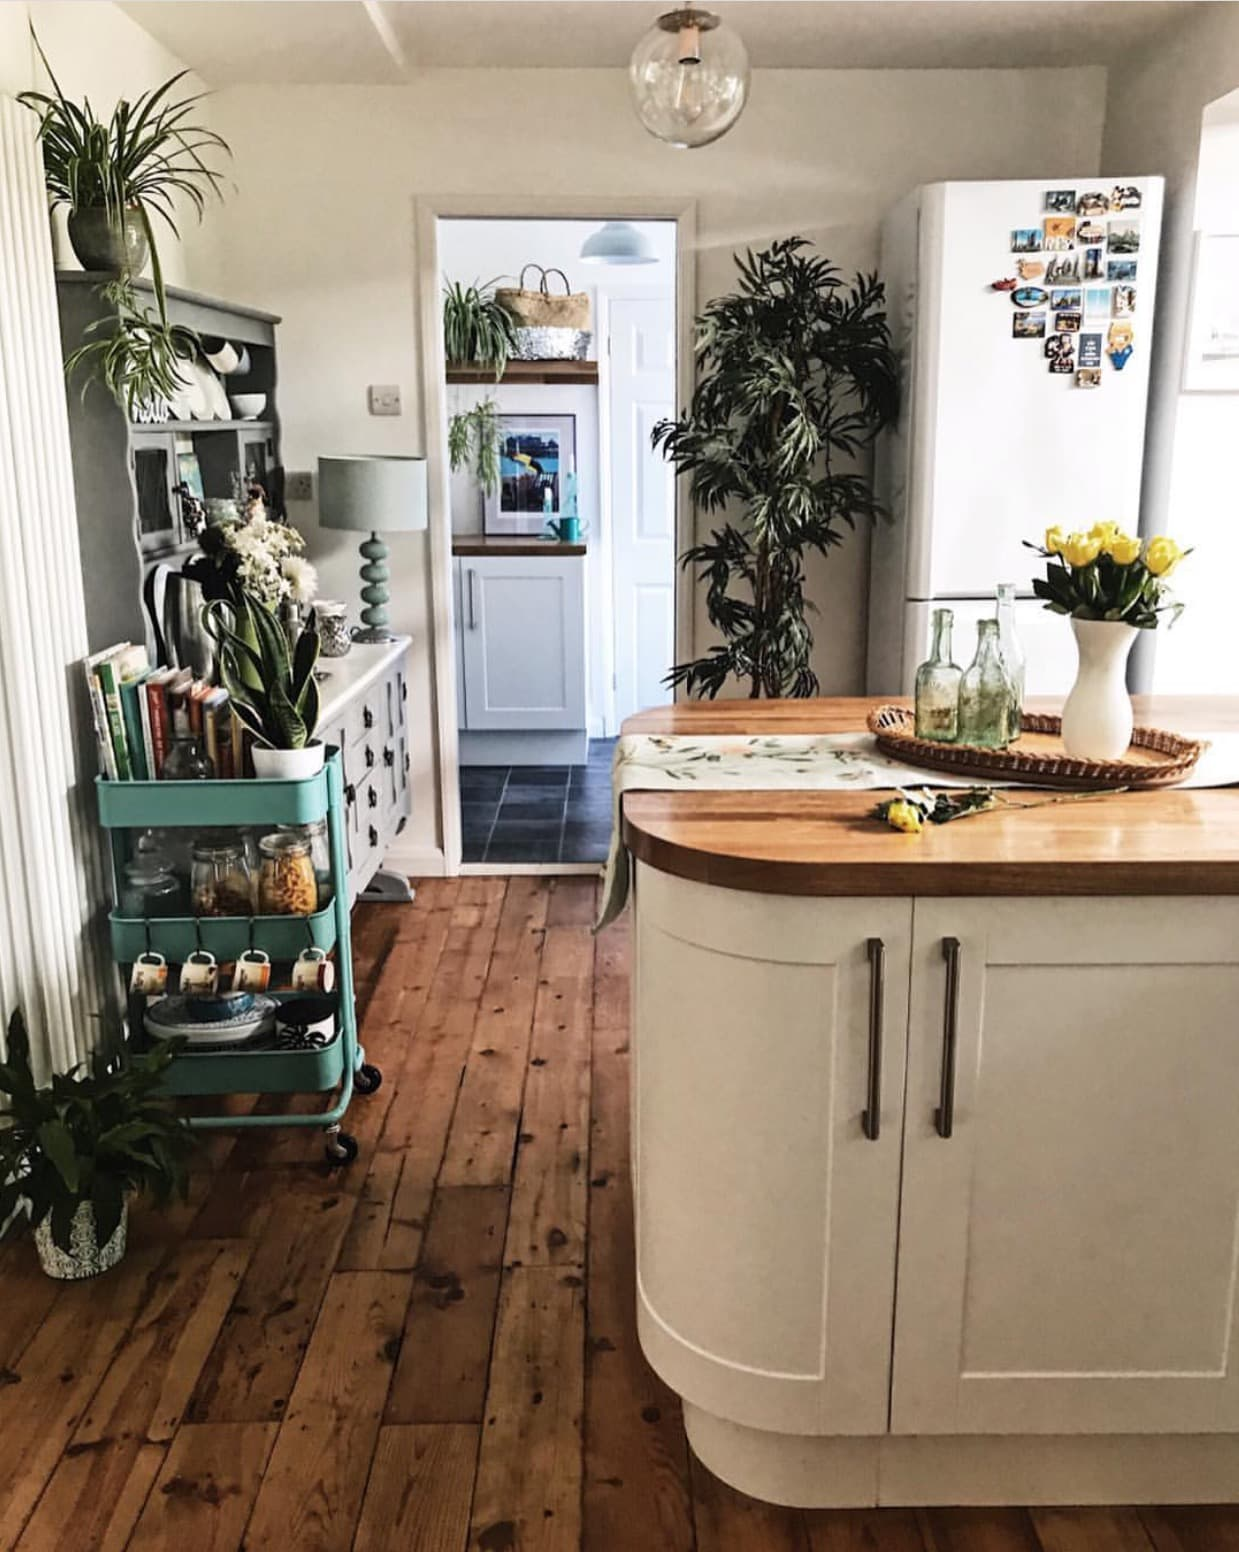 Our old Indesit fridge in our white kitchen